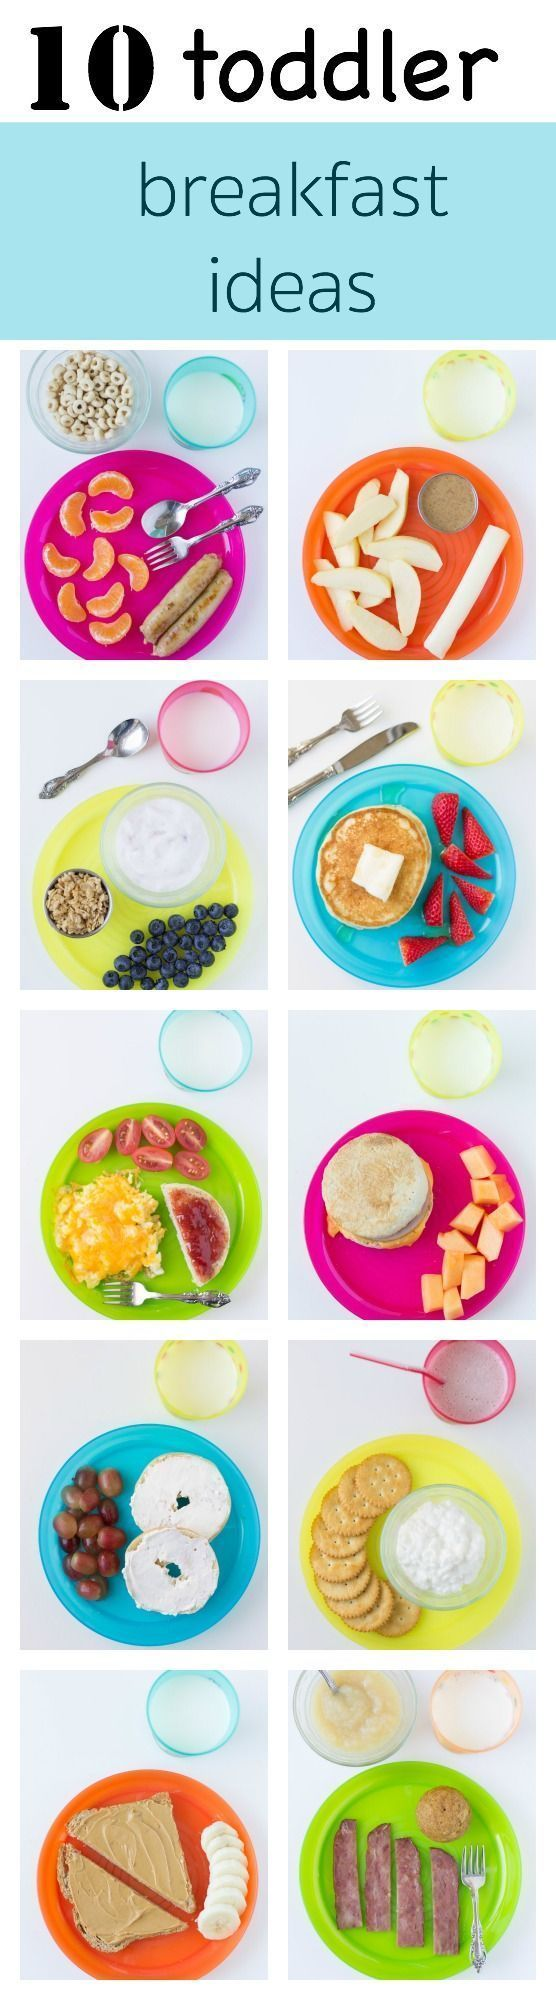 10 Toddler Breakfast Ideas | Culinary Hill